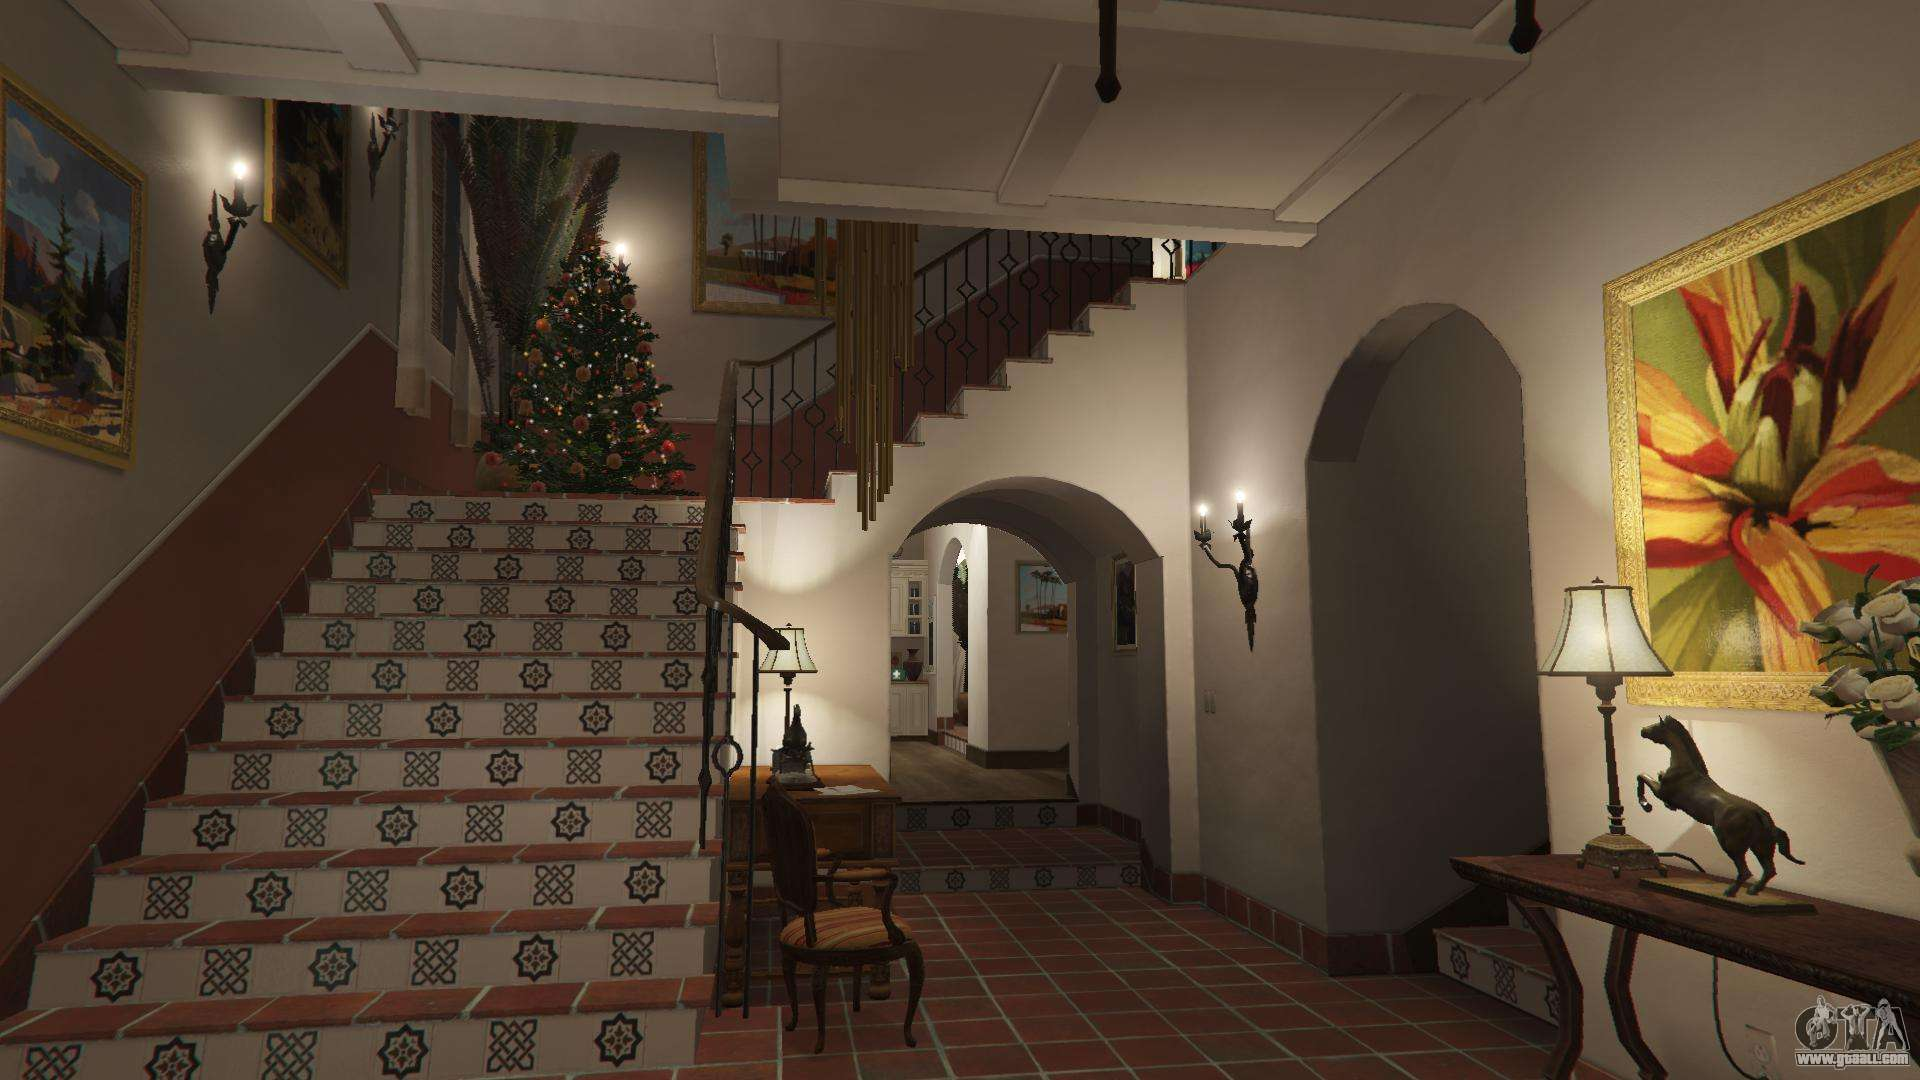 Design This Home Cheats 2015 Christmas Decorations For Michael S House For Gta 5